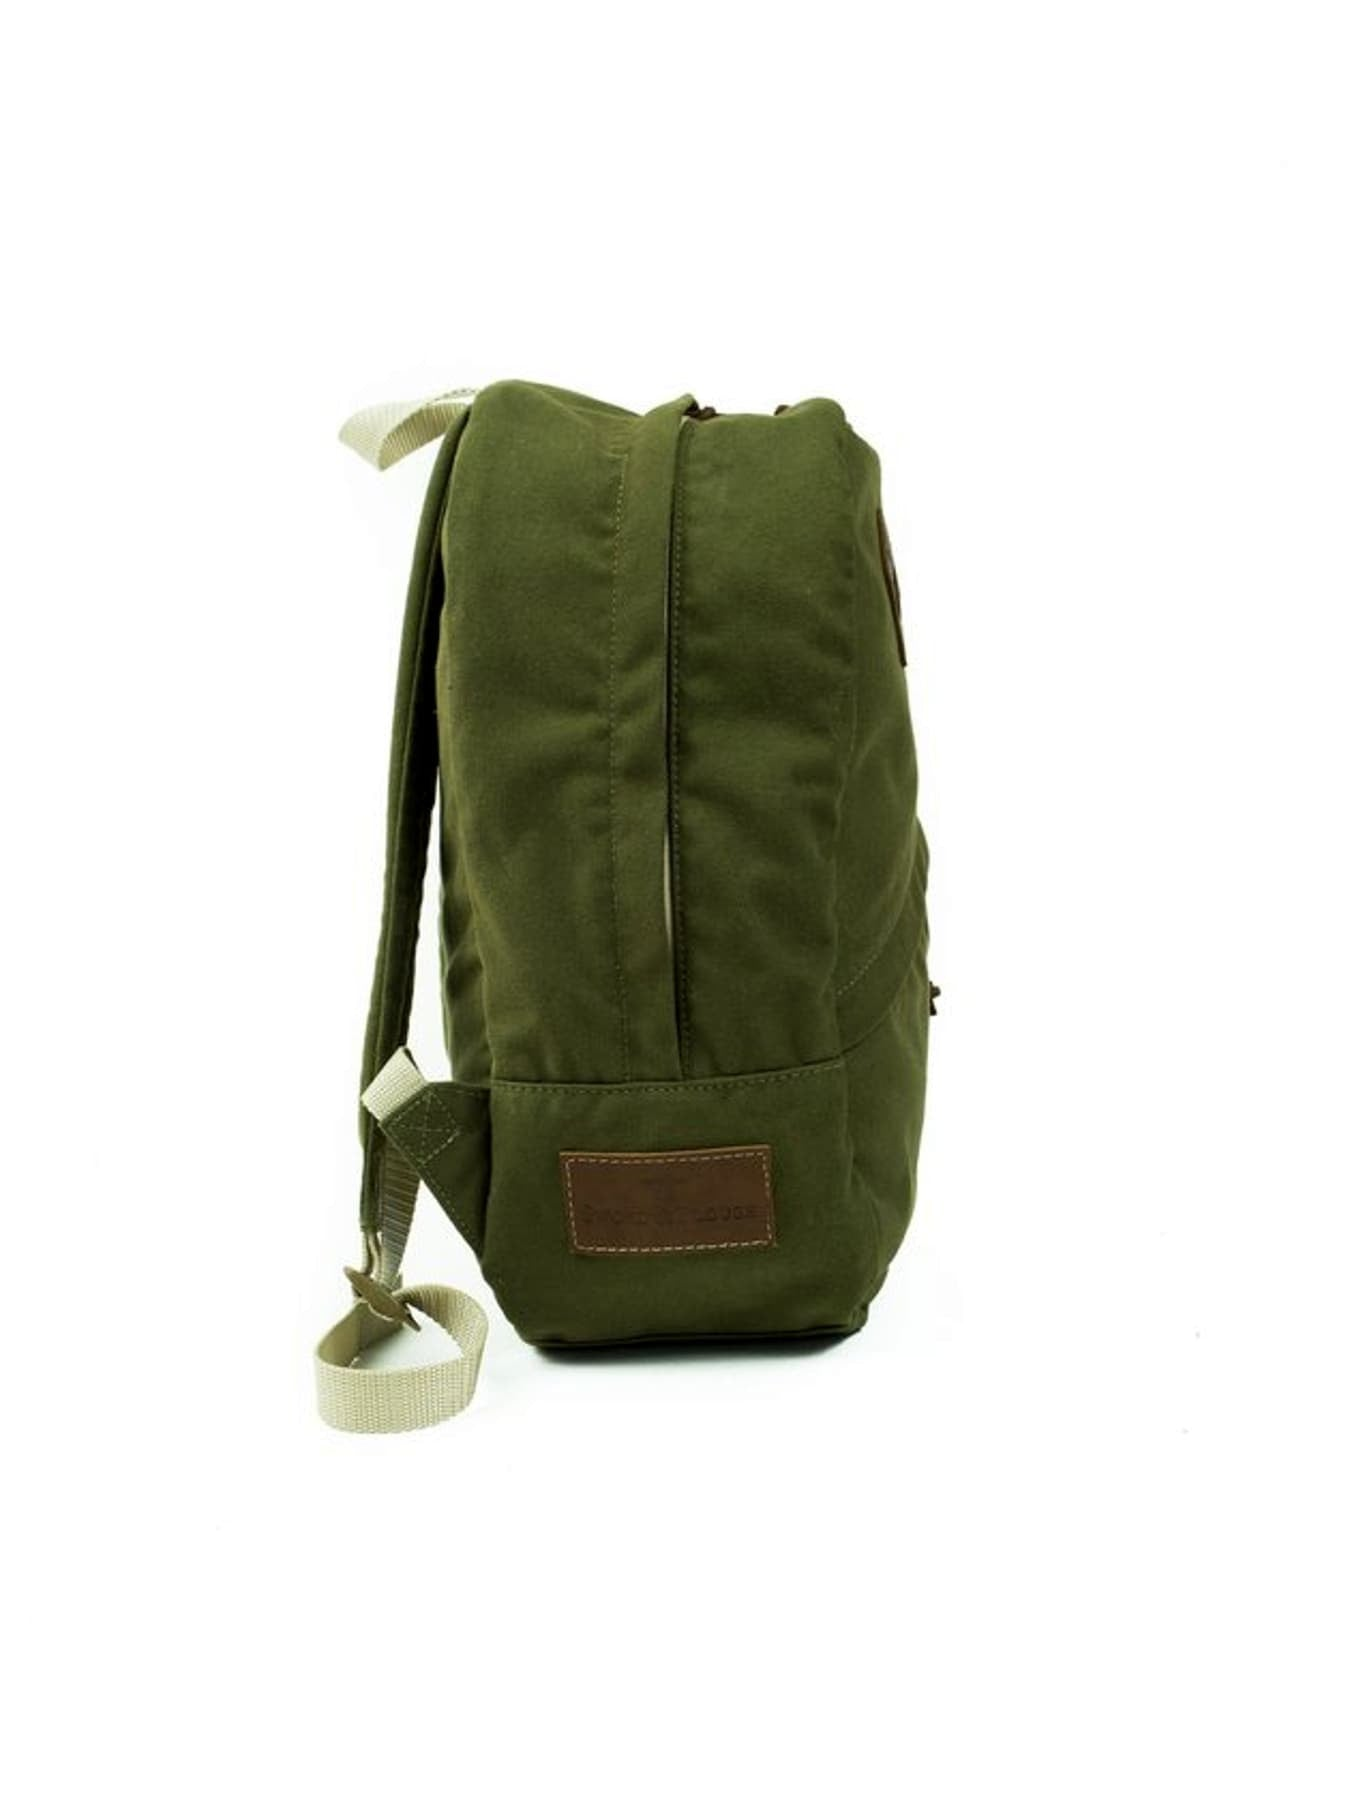 Green Canvas Field Pack